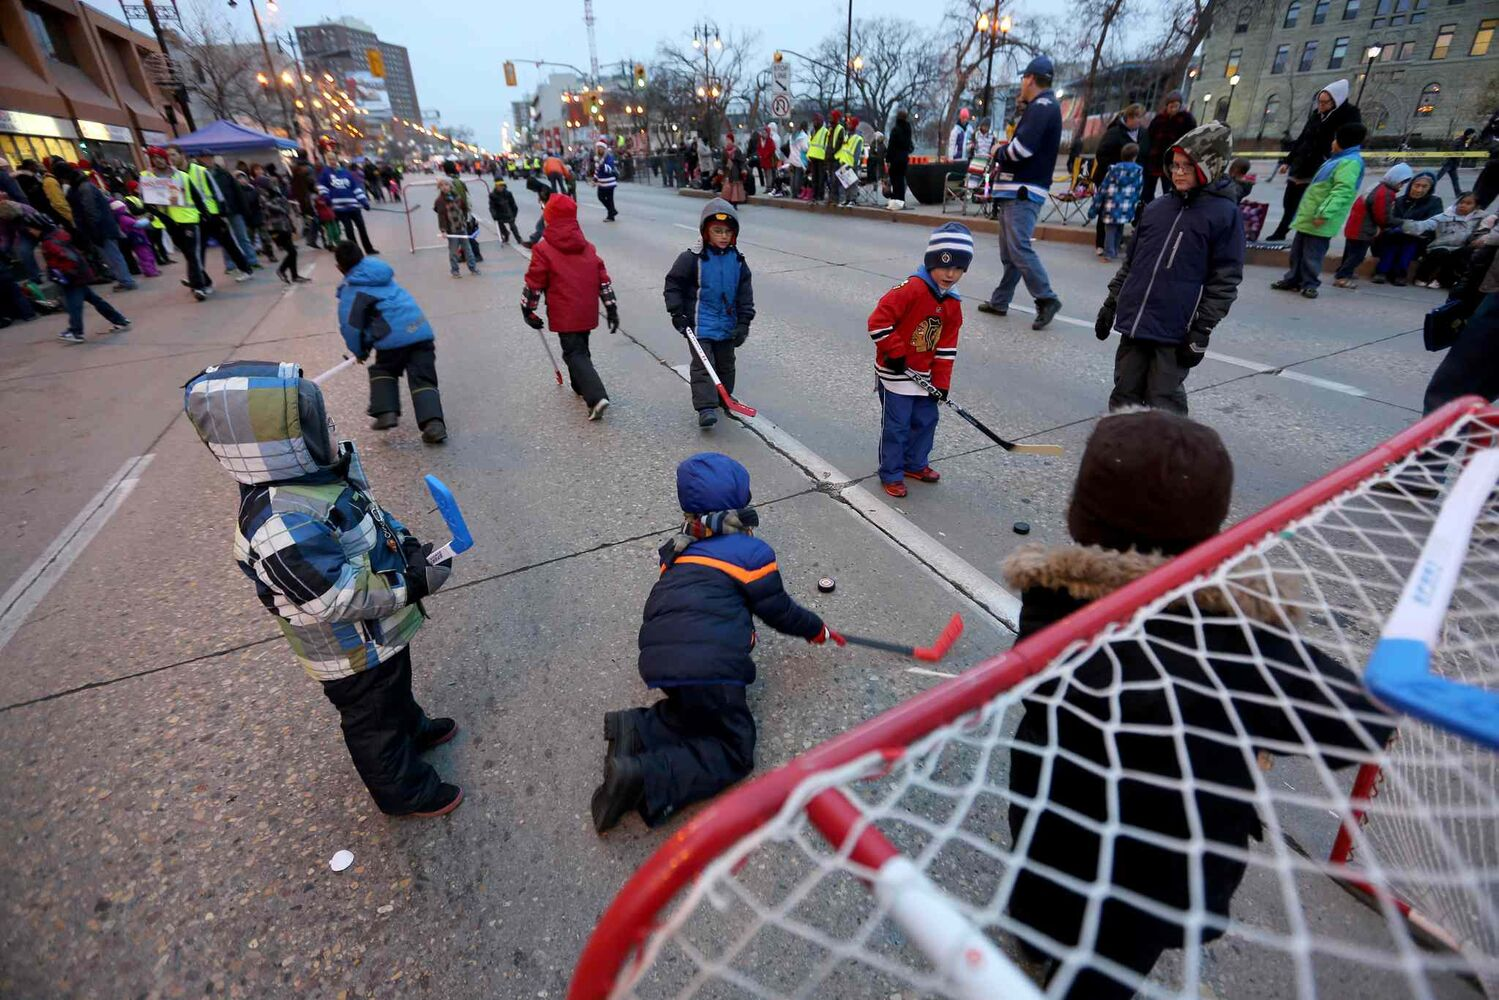 A game of street hockey before the parade keeps kids busy. (TREVOR HAGAN / WINNIPEG FREE PRESS)